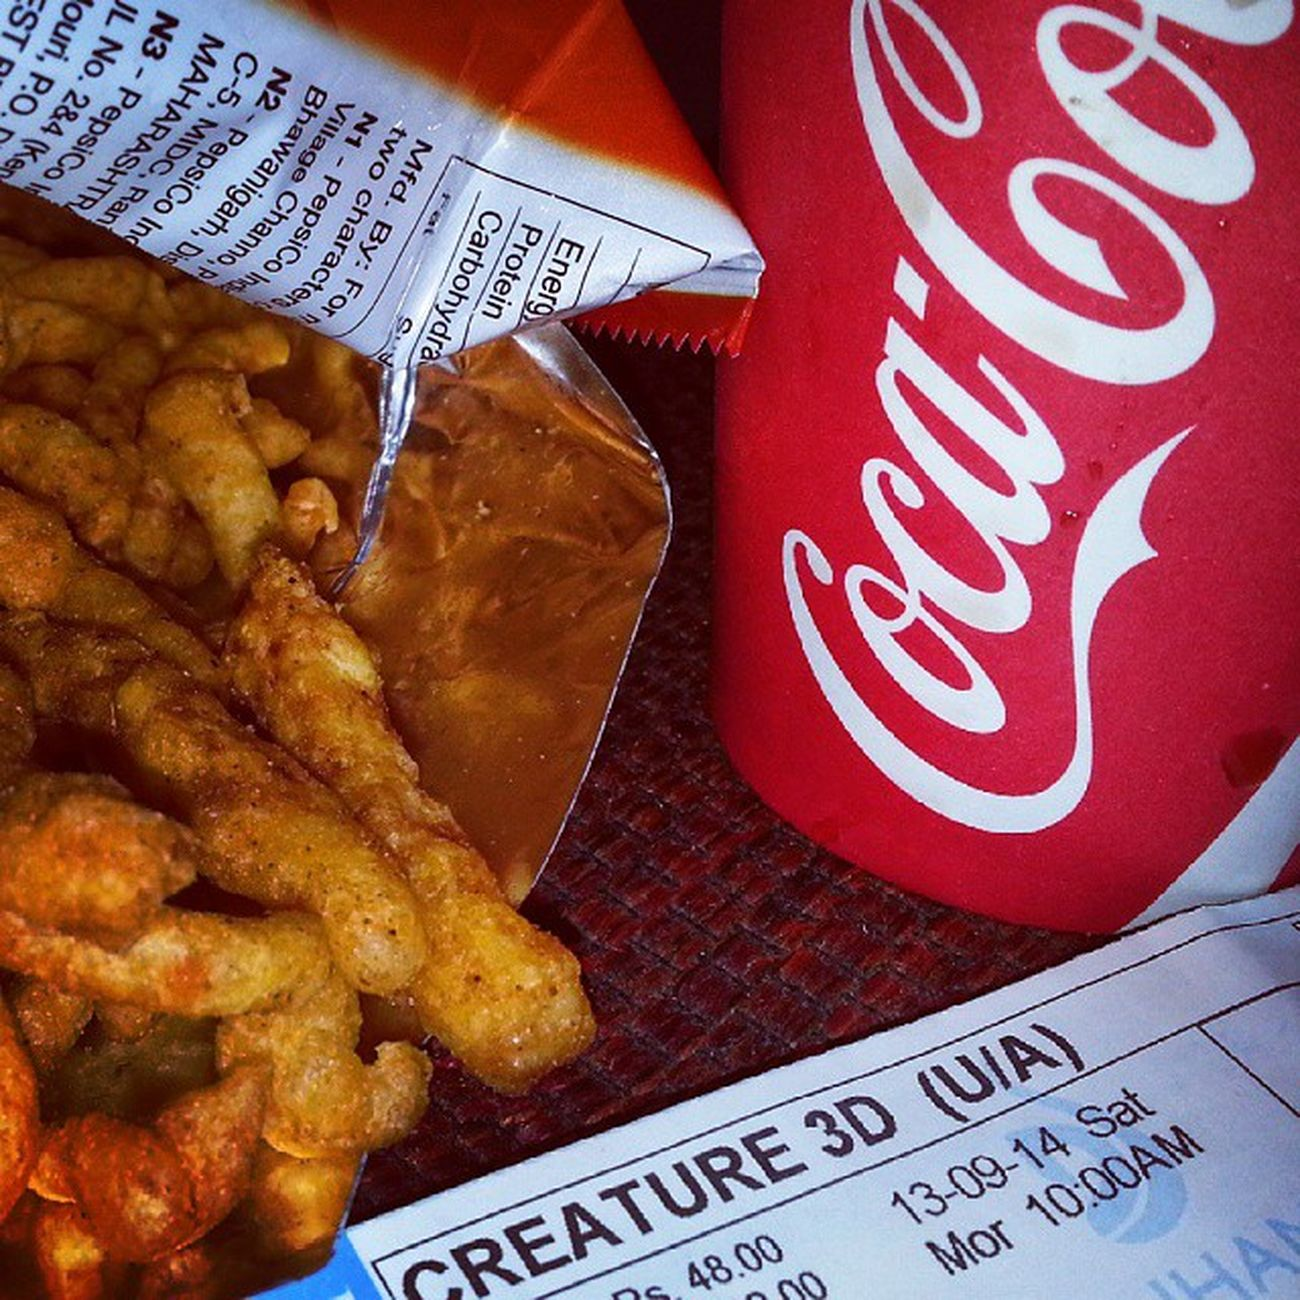 Kurkure Coca -Cola Interval Watching CREATURE 3D Ssuppeerrbb Movie Very Rainy Weather Evening Click Edit Edited PicOfTheDay ... ,,,